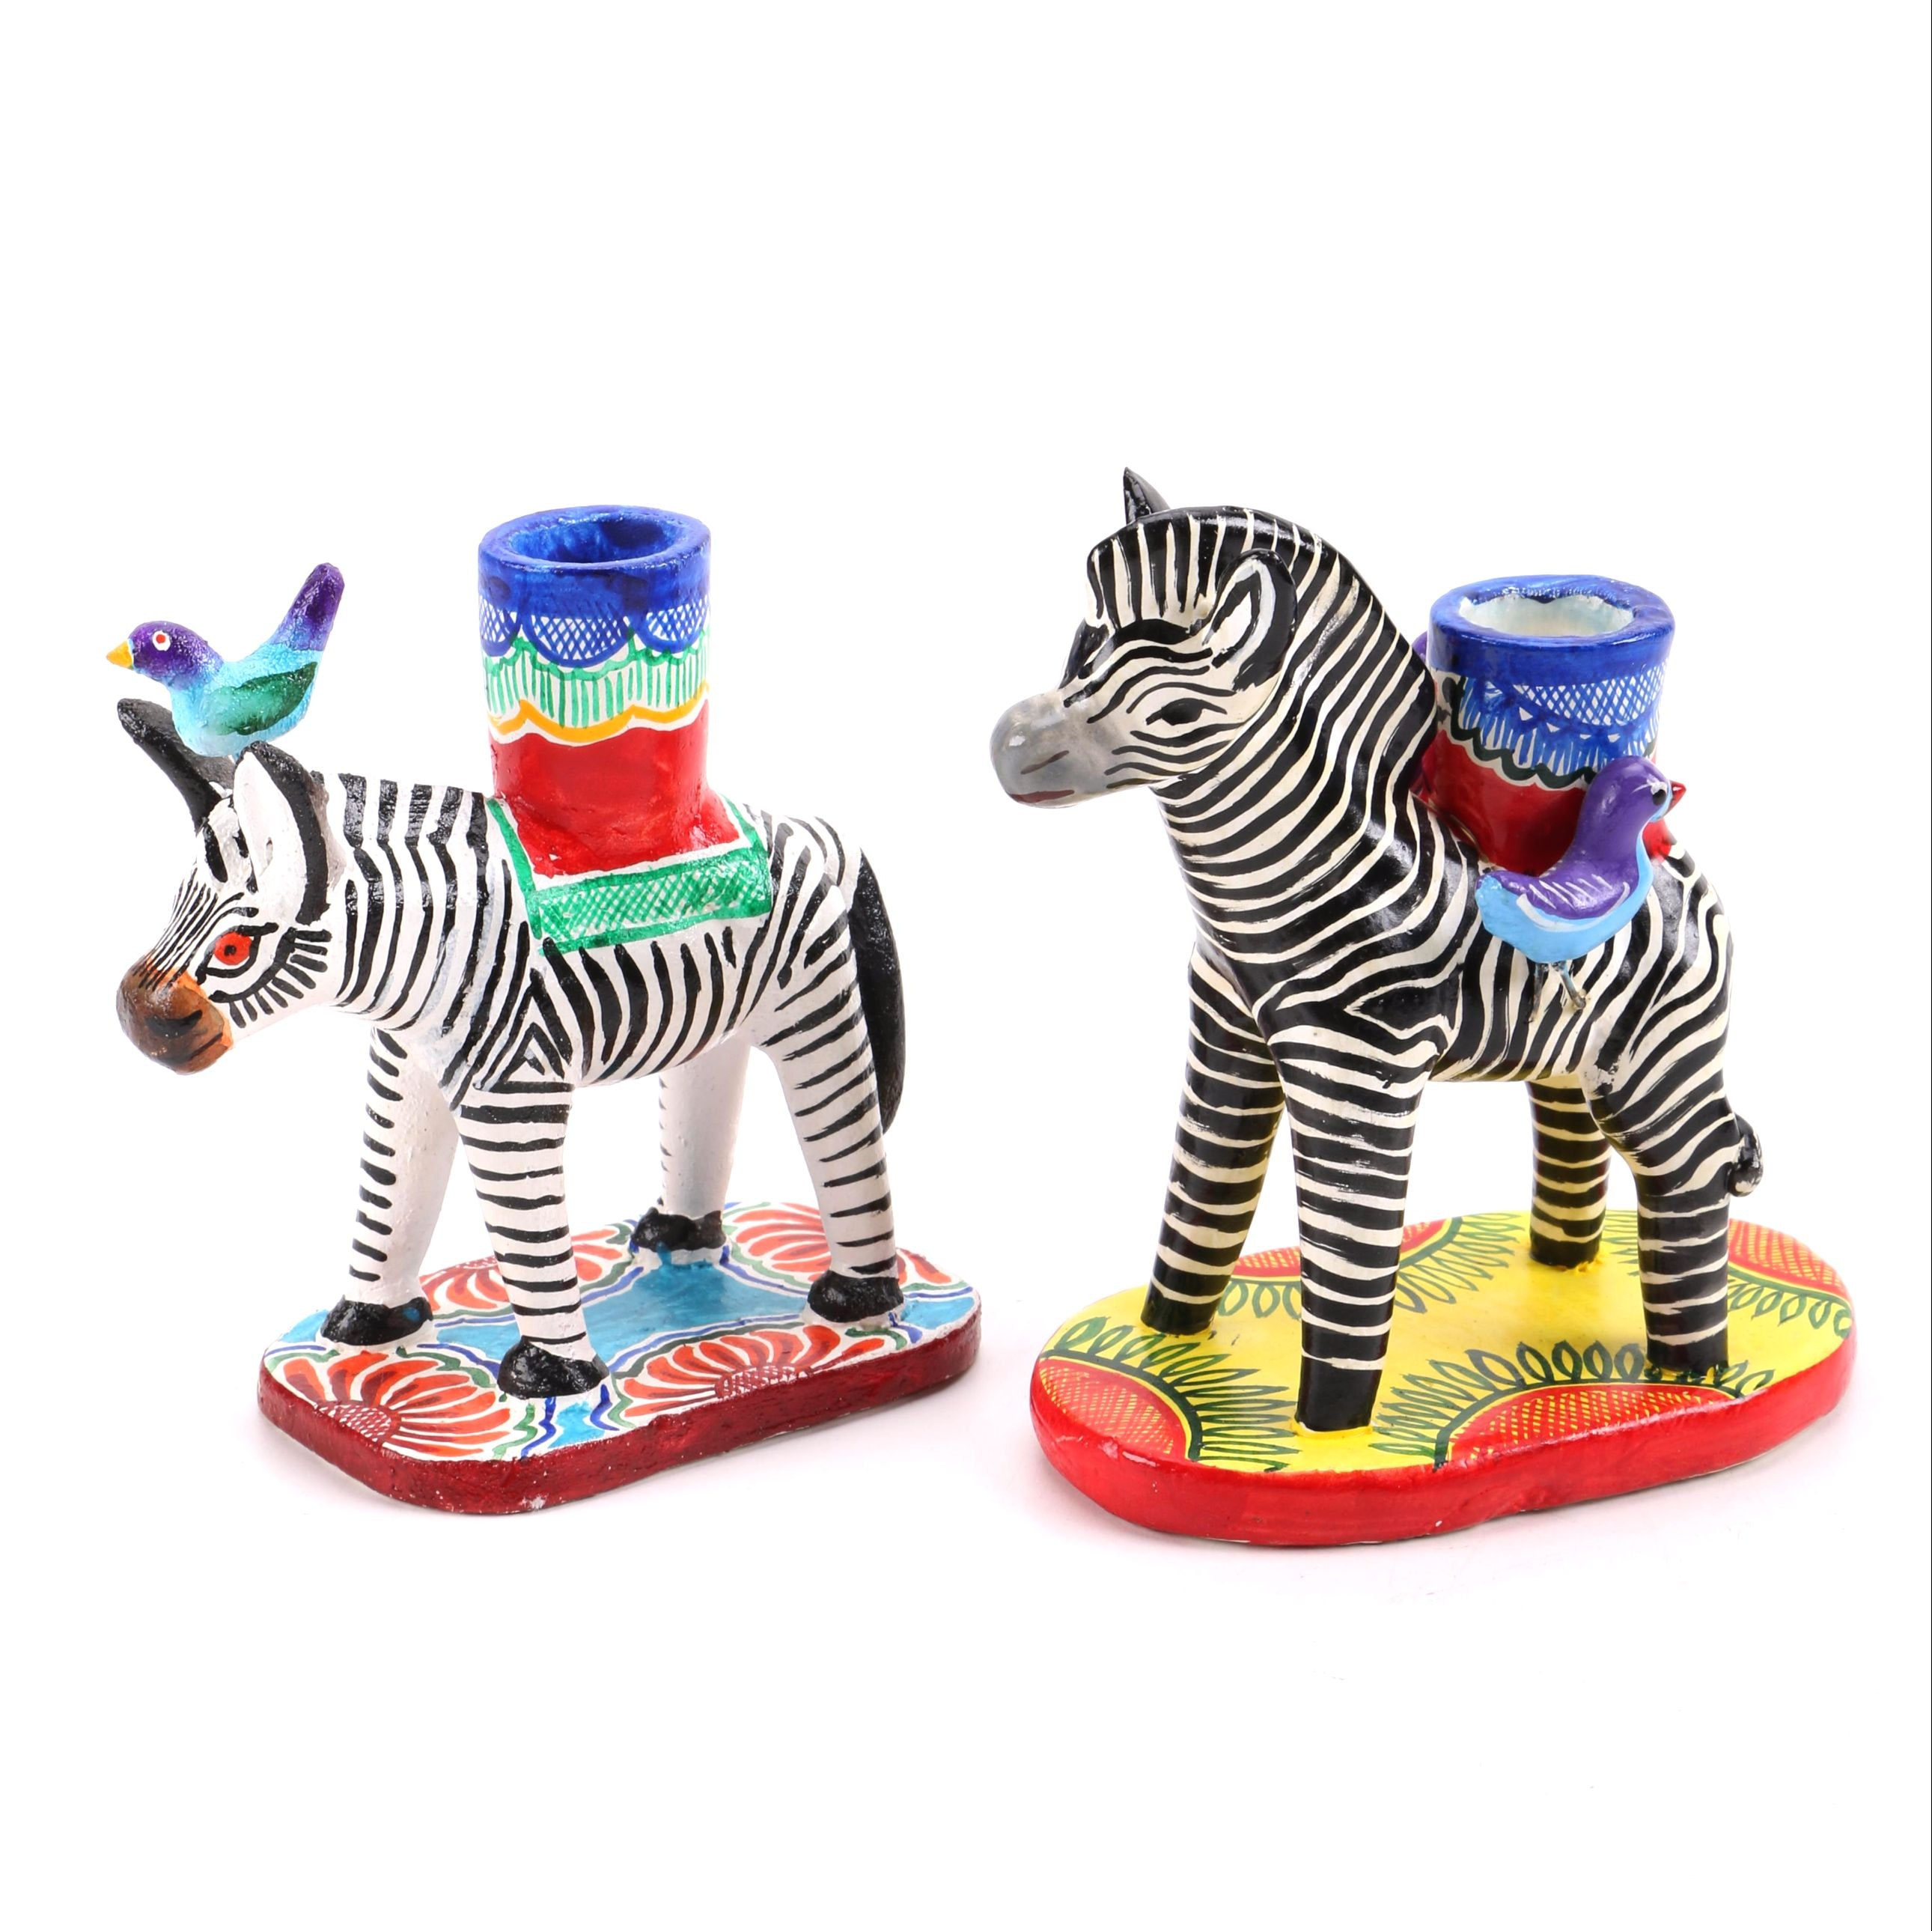 Mexican Ceramic Zebra Figurine Candle Holders